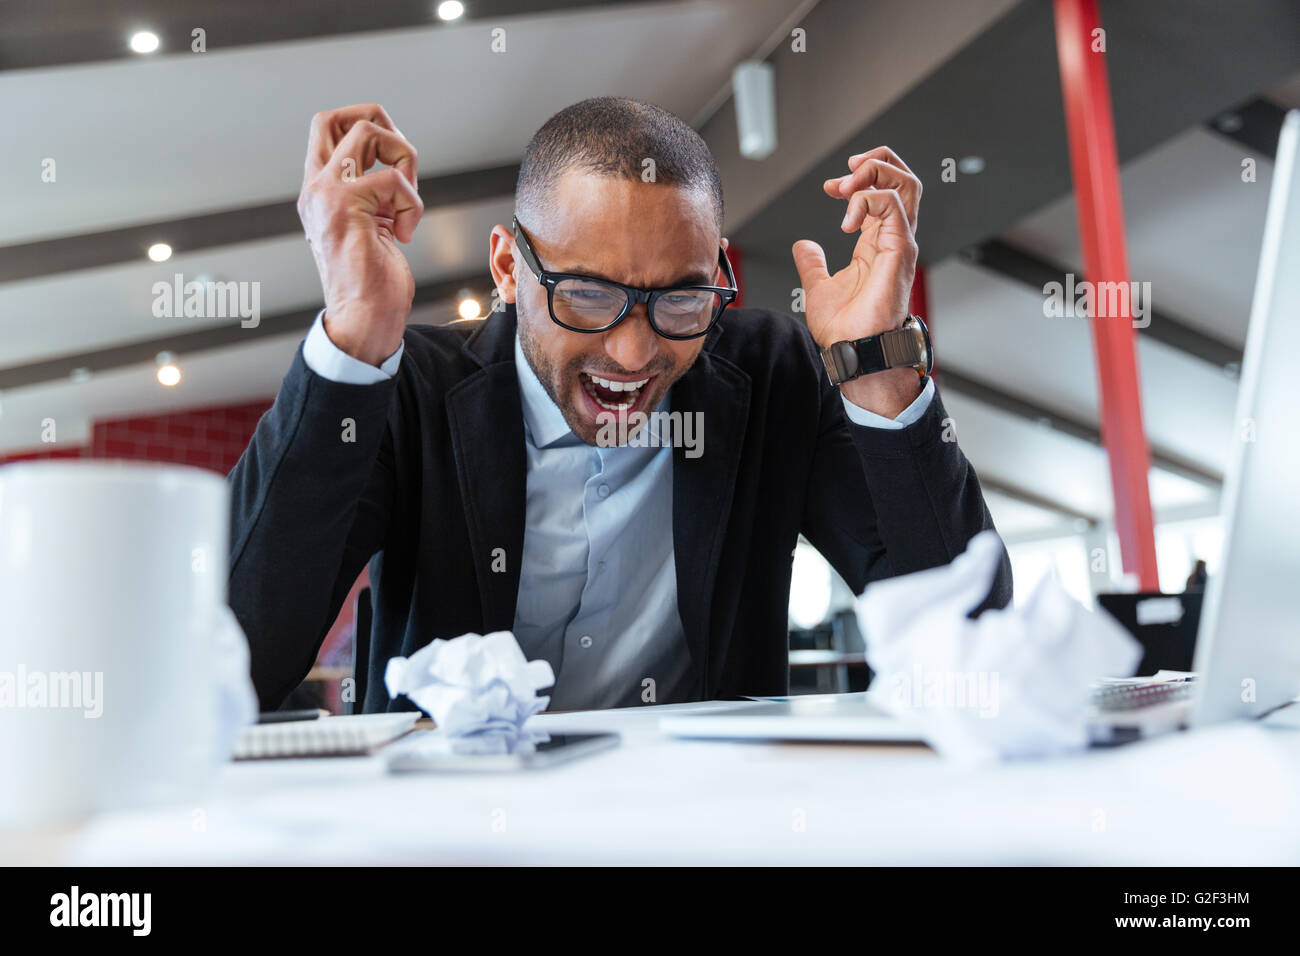 Shouting tired businessman at his desk at the office - Stock Image